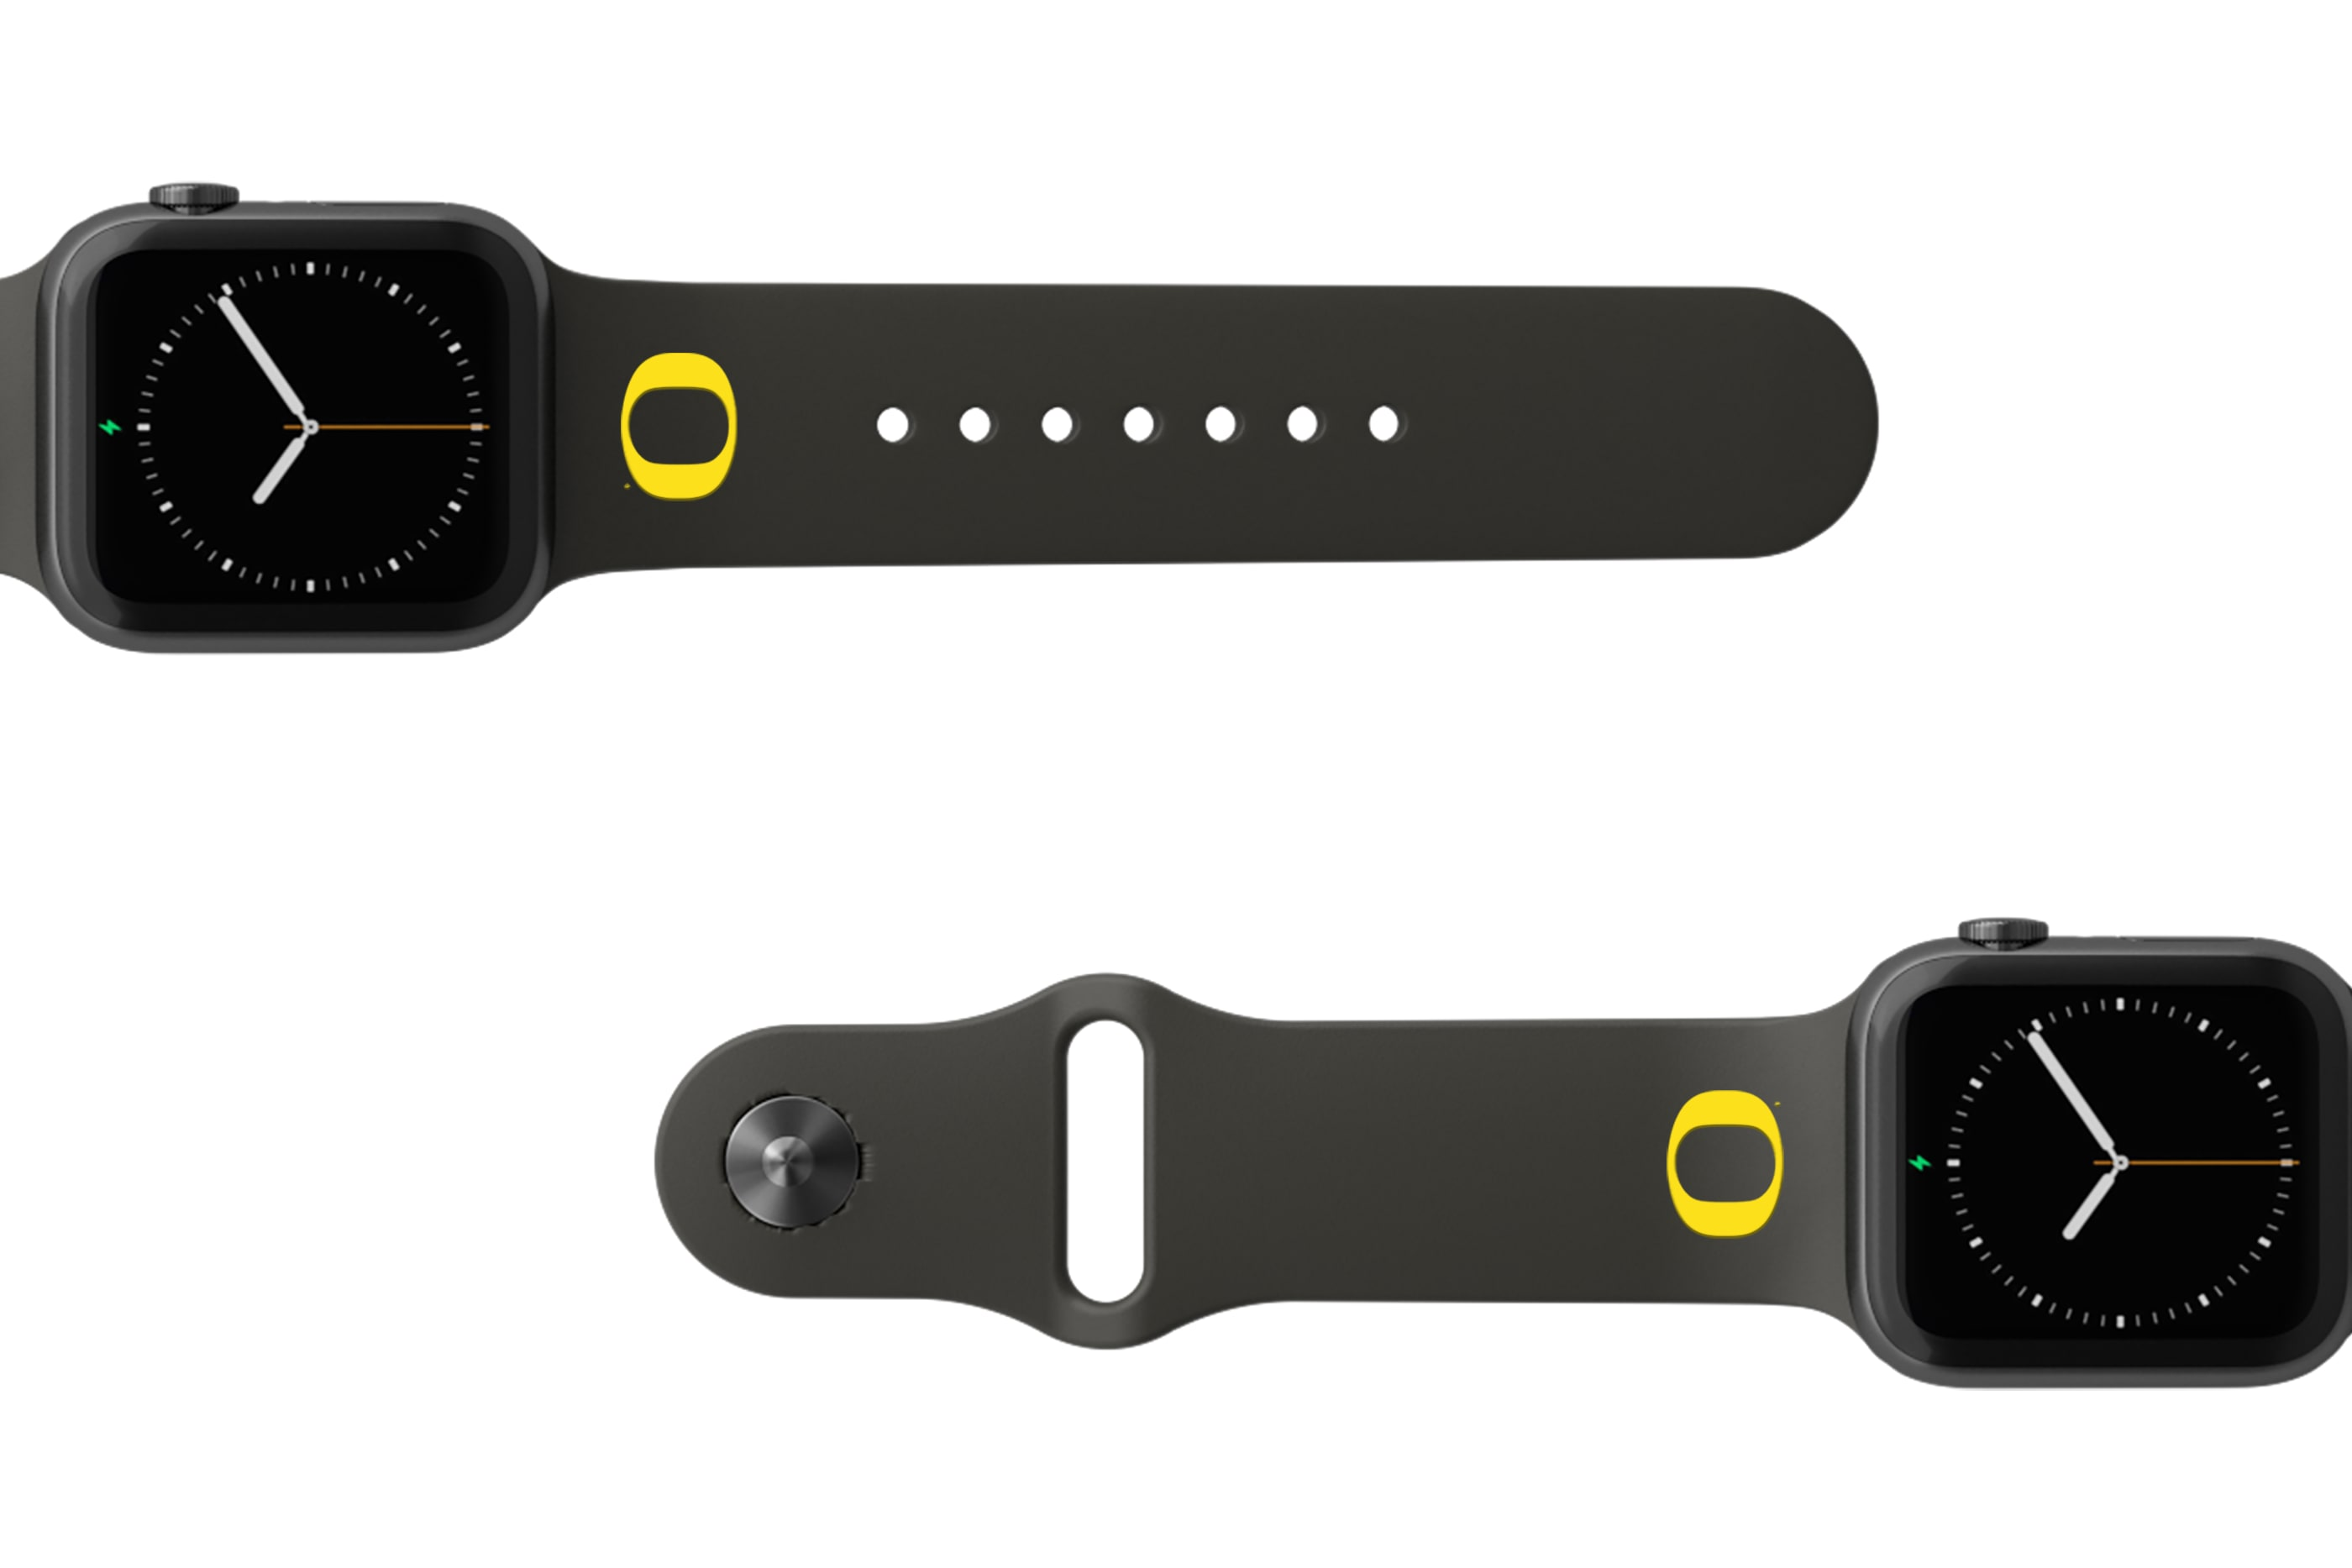 College Oregon Black apple watch band with gray hardware viewed from rear